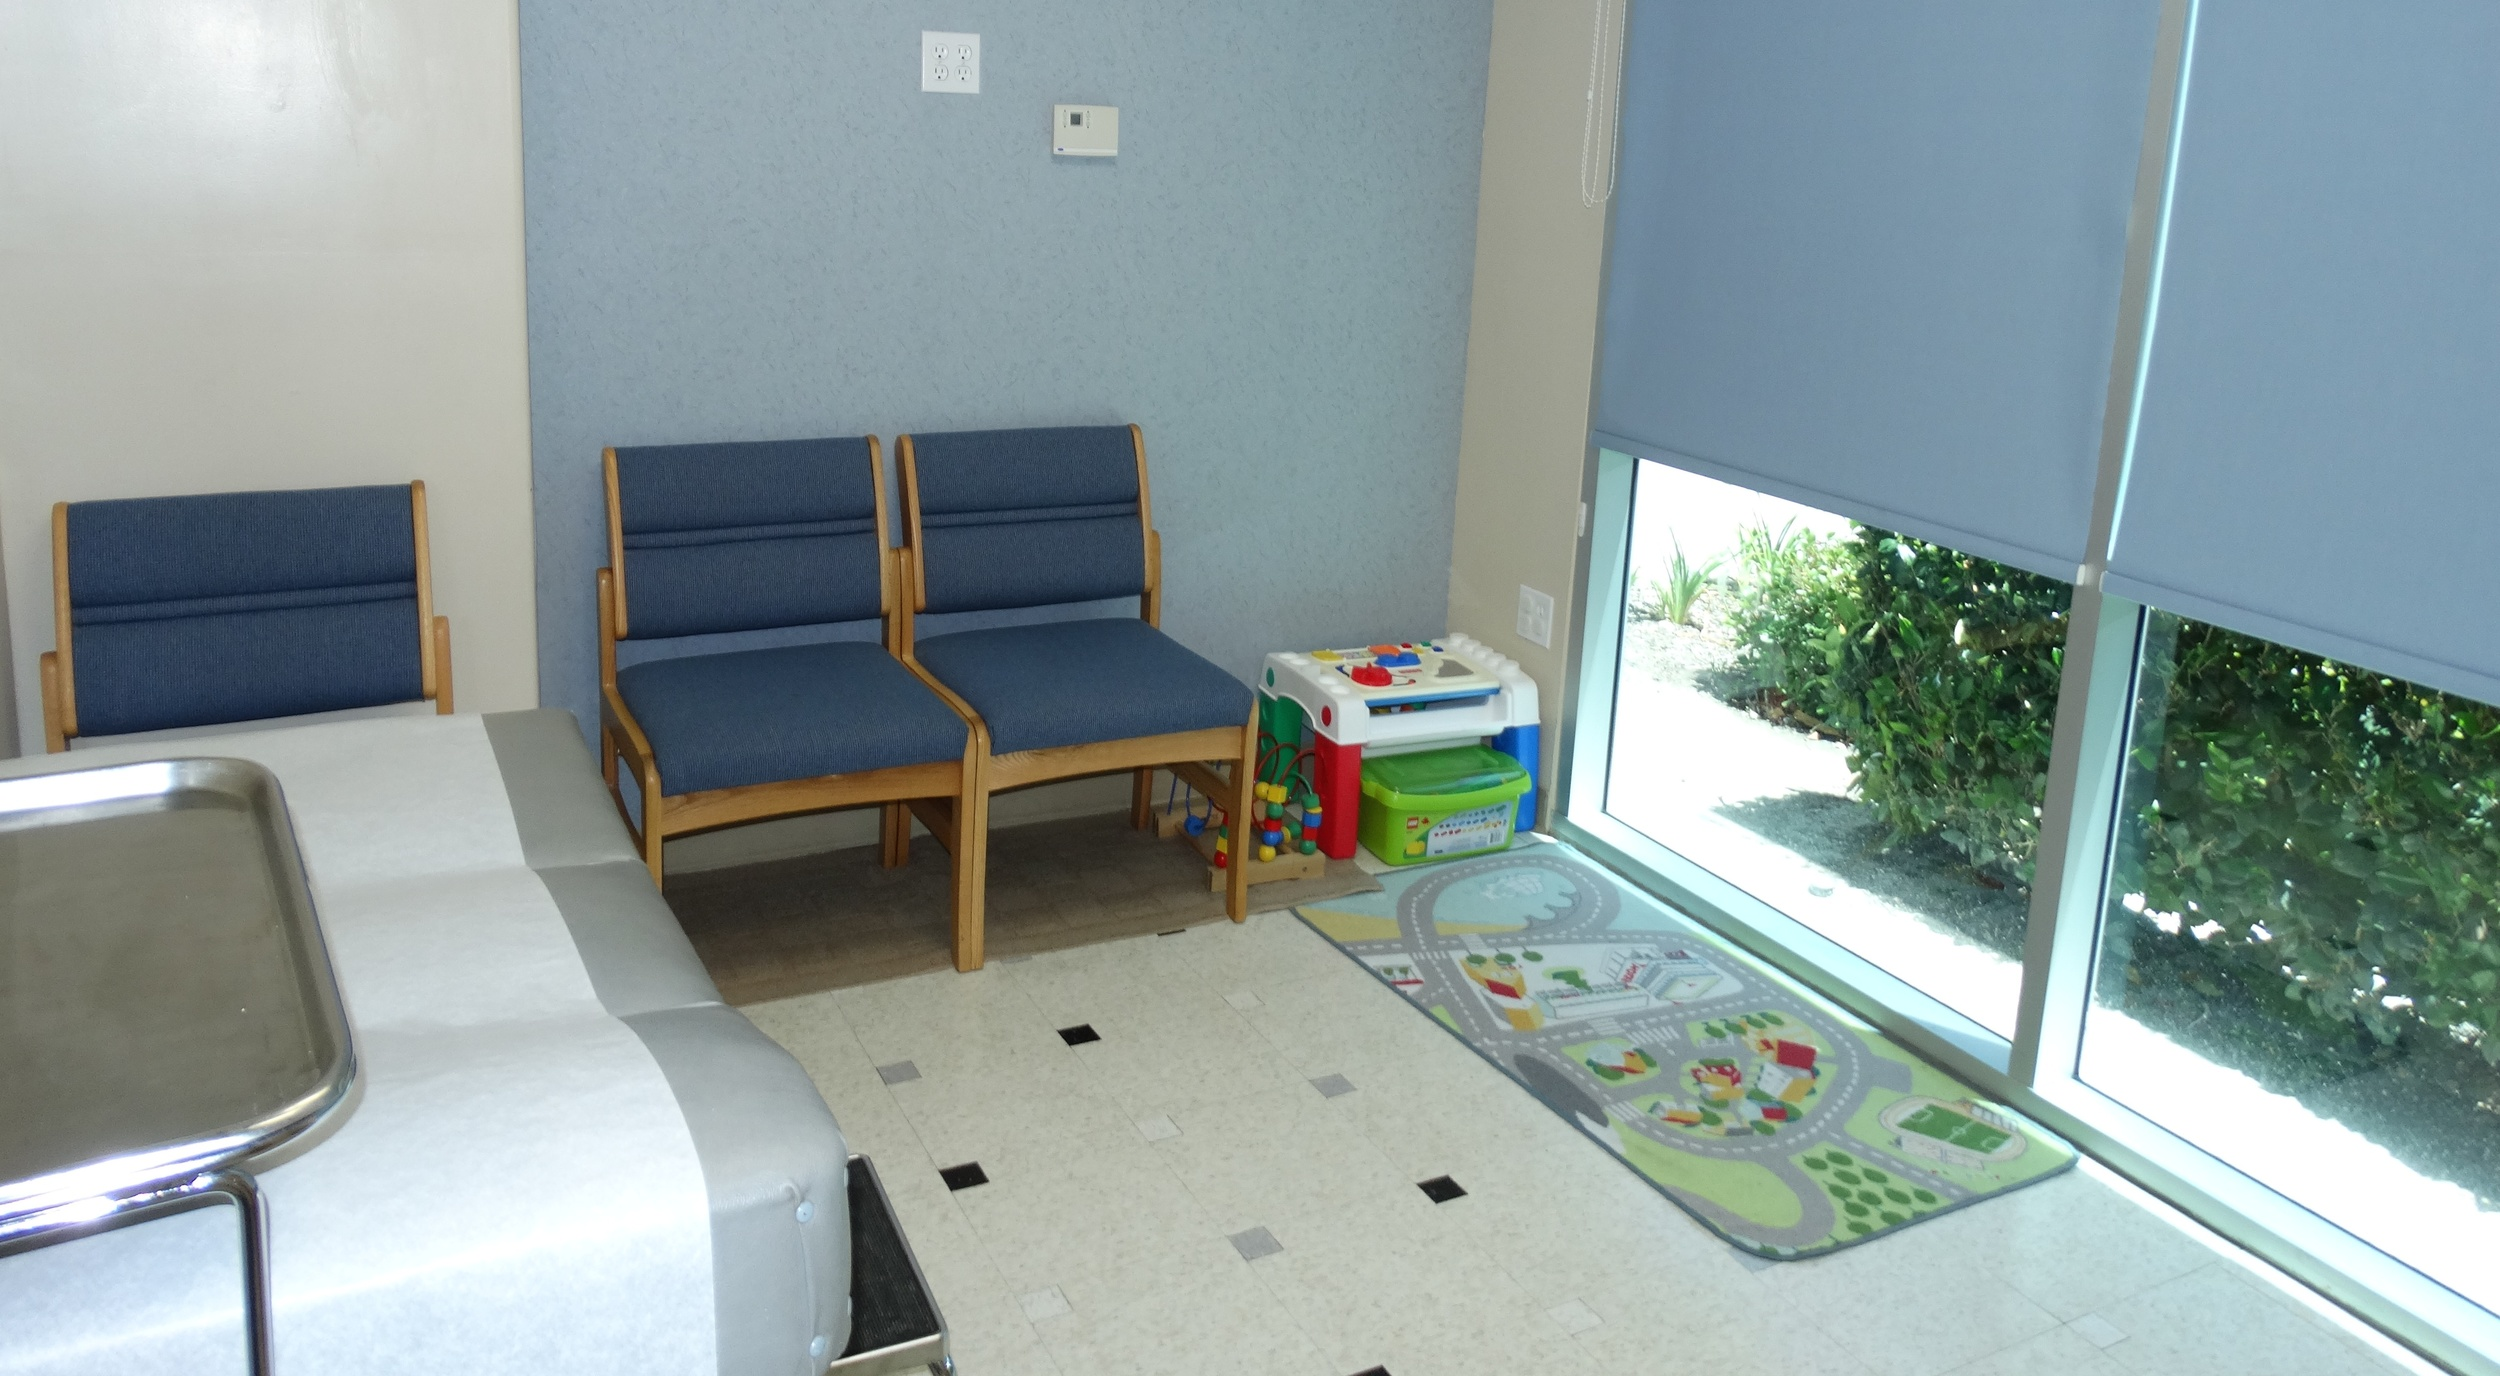 We haveexam rooms outfitted for children.